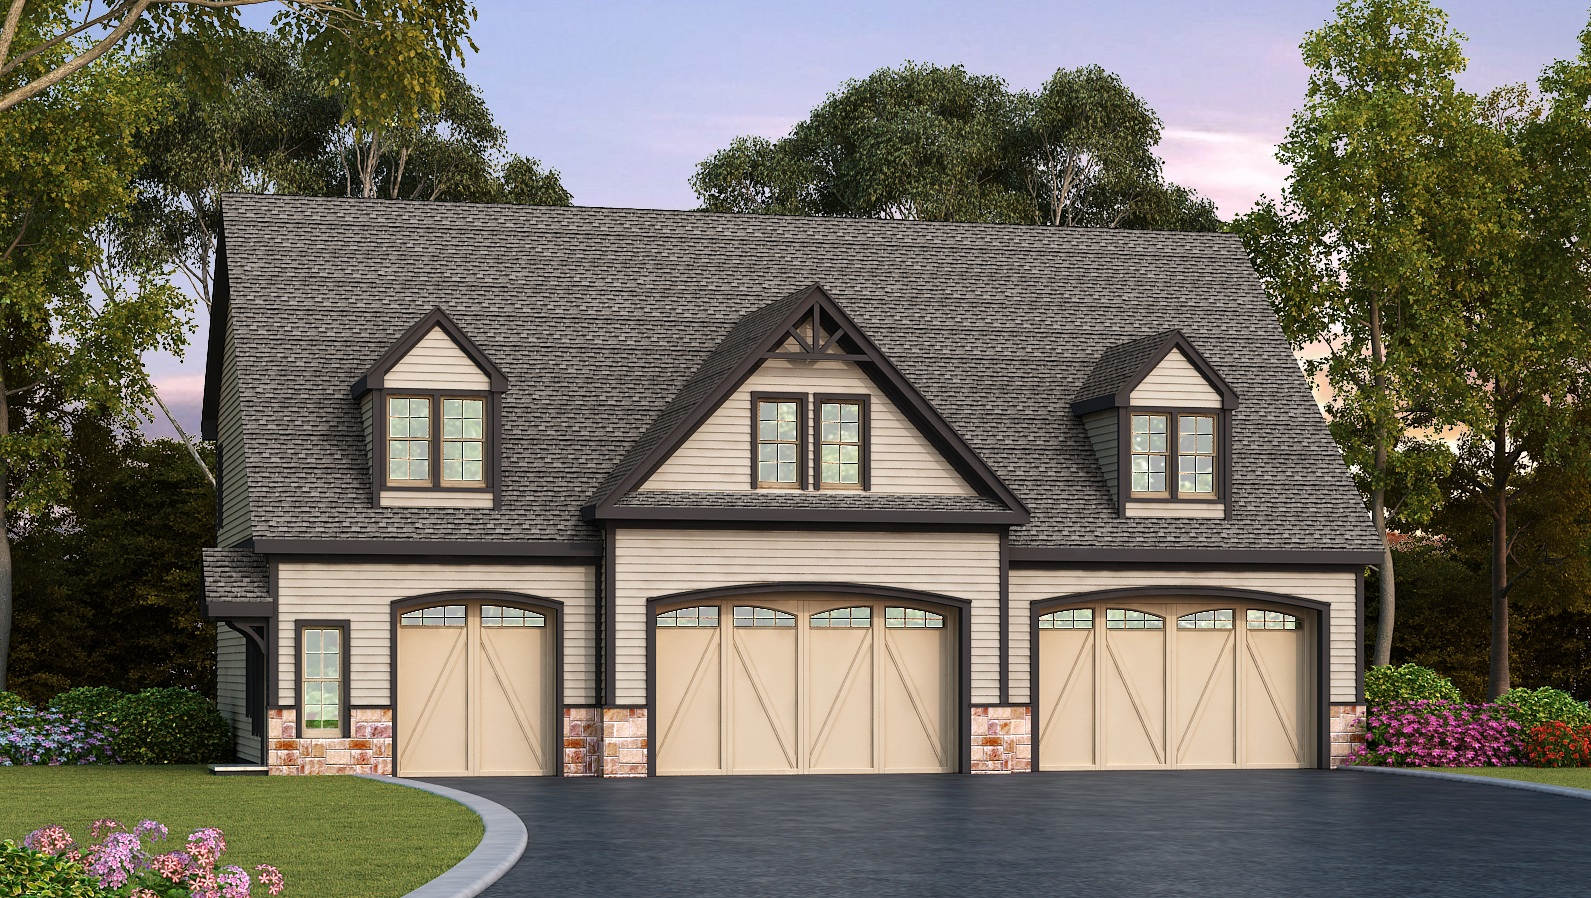 hight resolution of residential 5 car detached garage plan 29870rl architectural house plans with detached garage on wiring house to detached garage